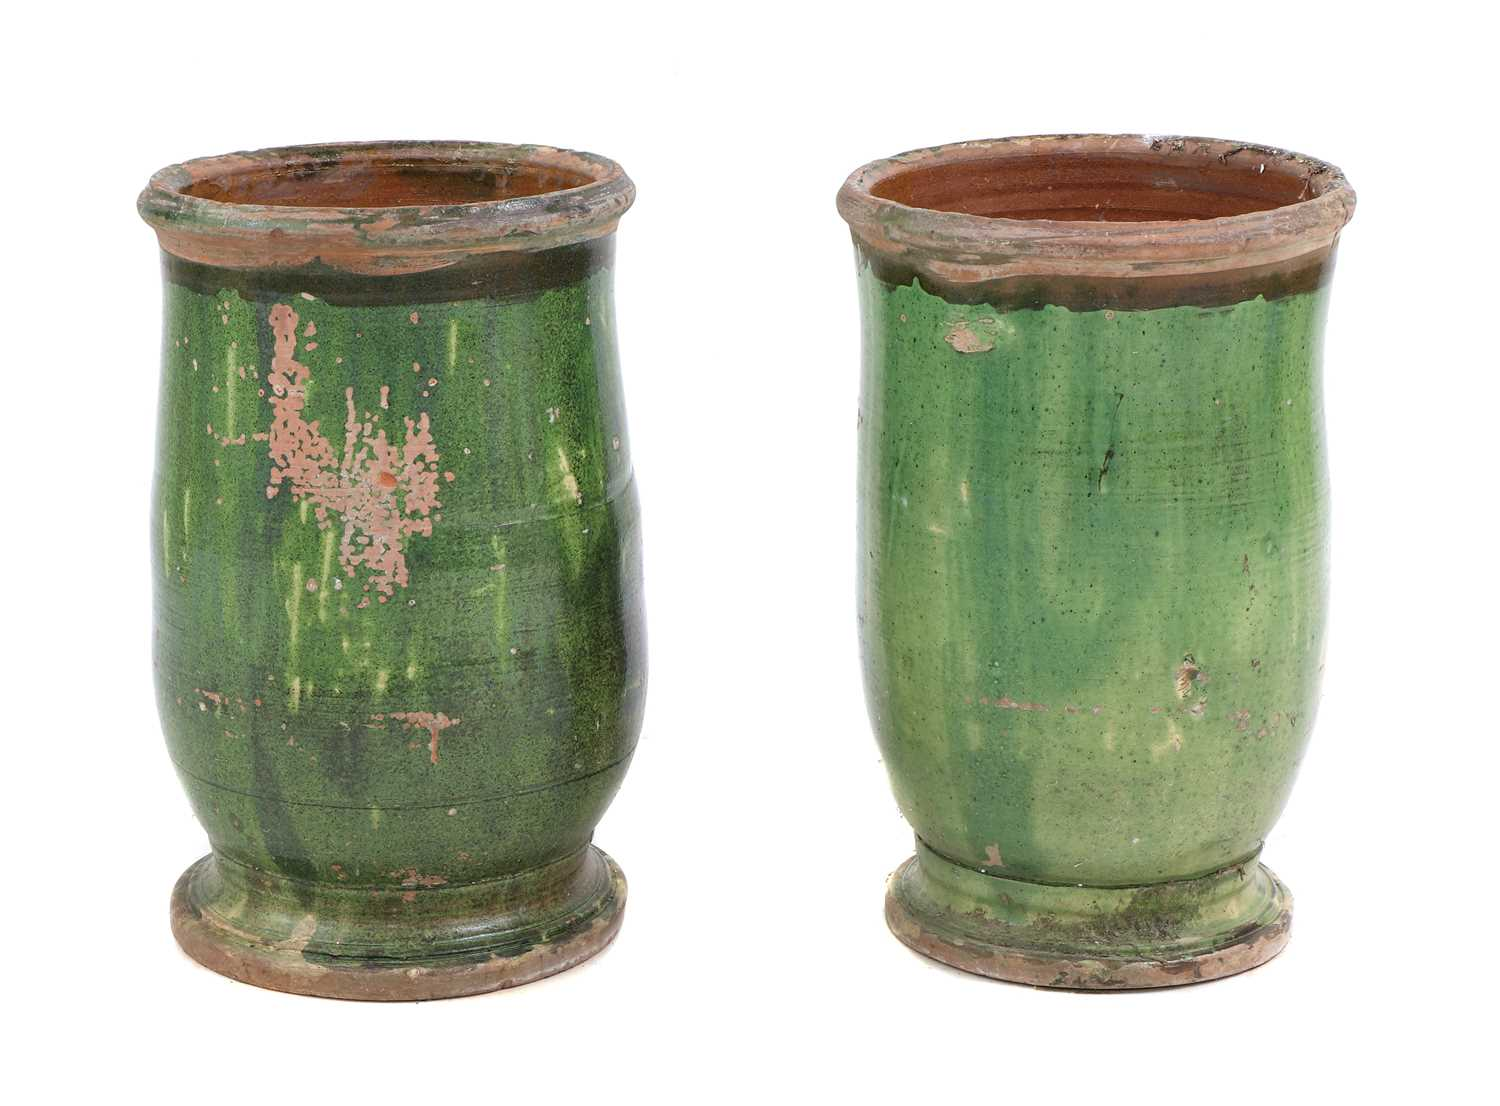 A pair of 'Poterie d'Anduze' green-glazed terracotta garden urns, - Image 2 of 2